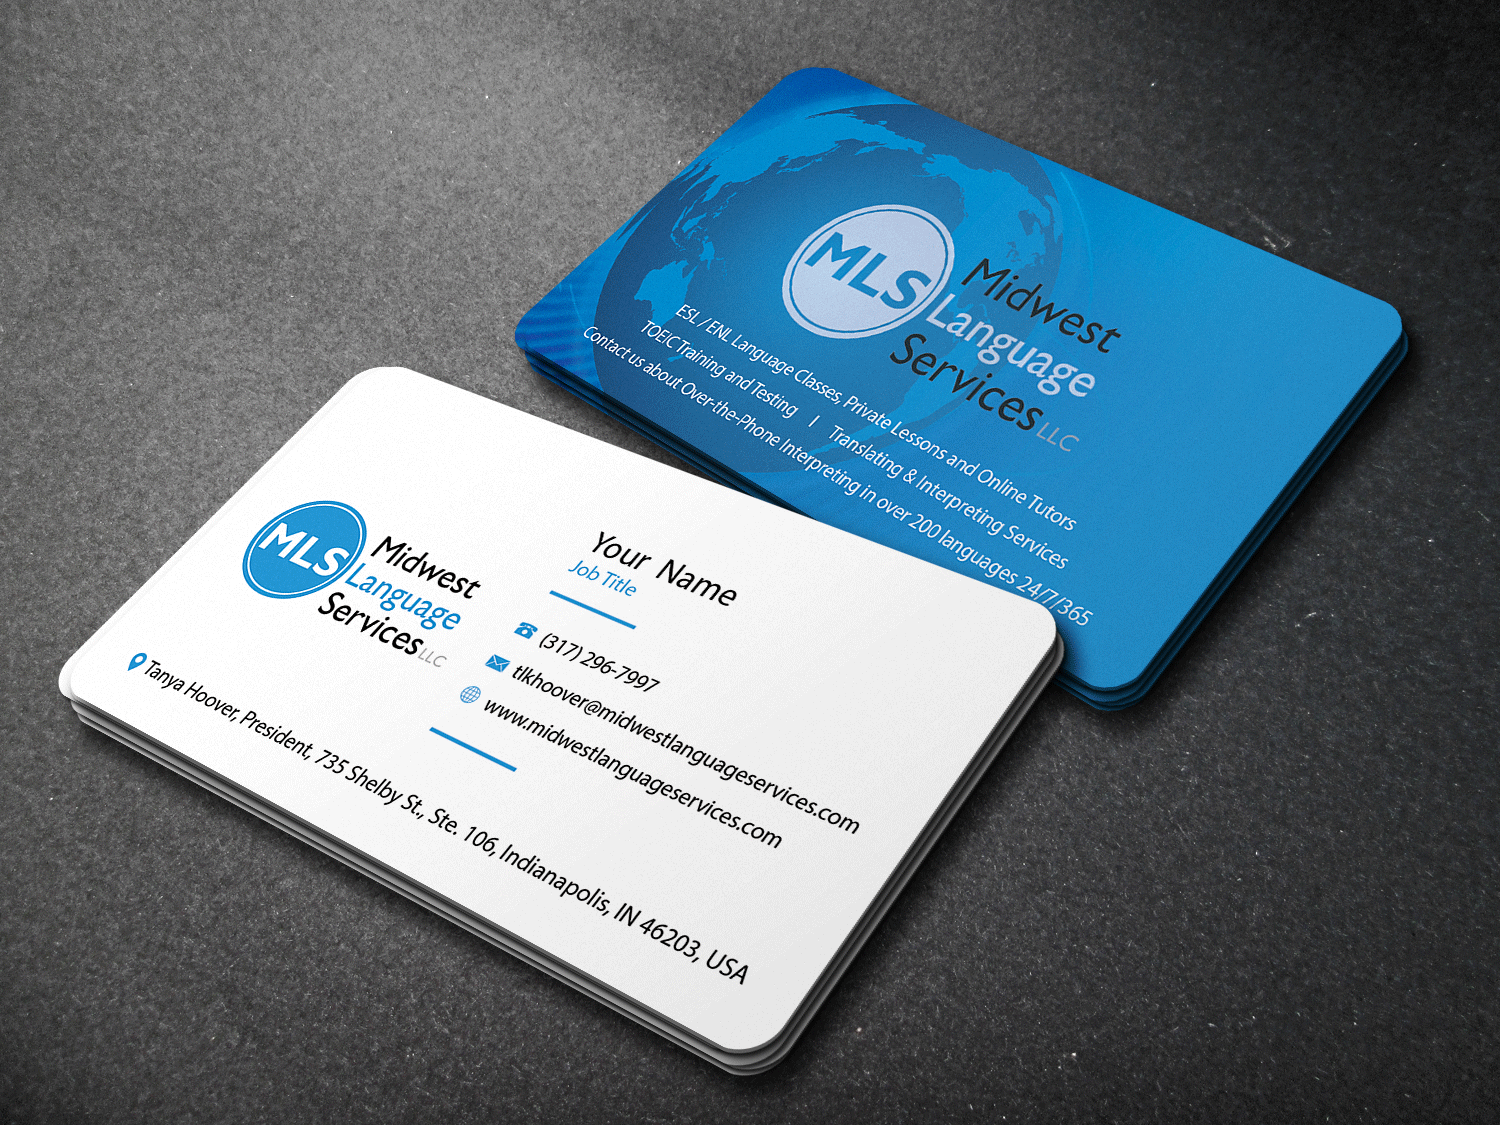 Serious modern business business card design for midwest language business card design by riz for midwest language services llc design 17771455 reheart Images